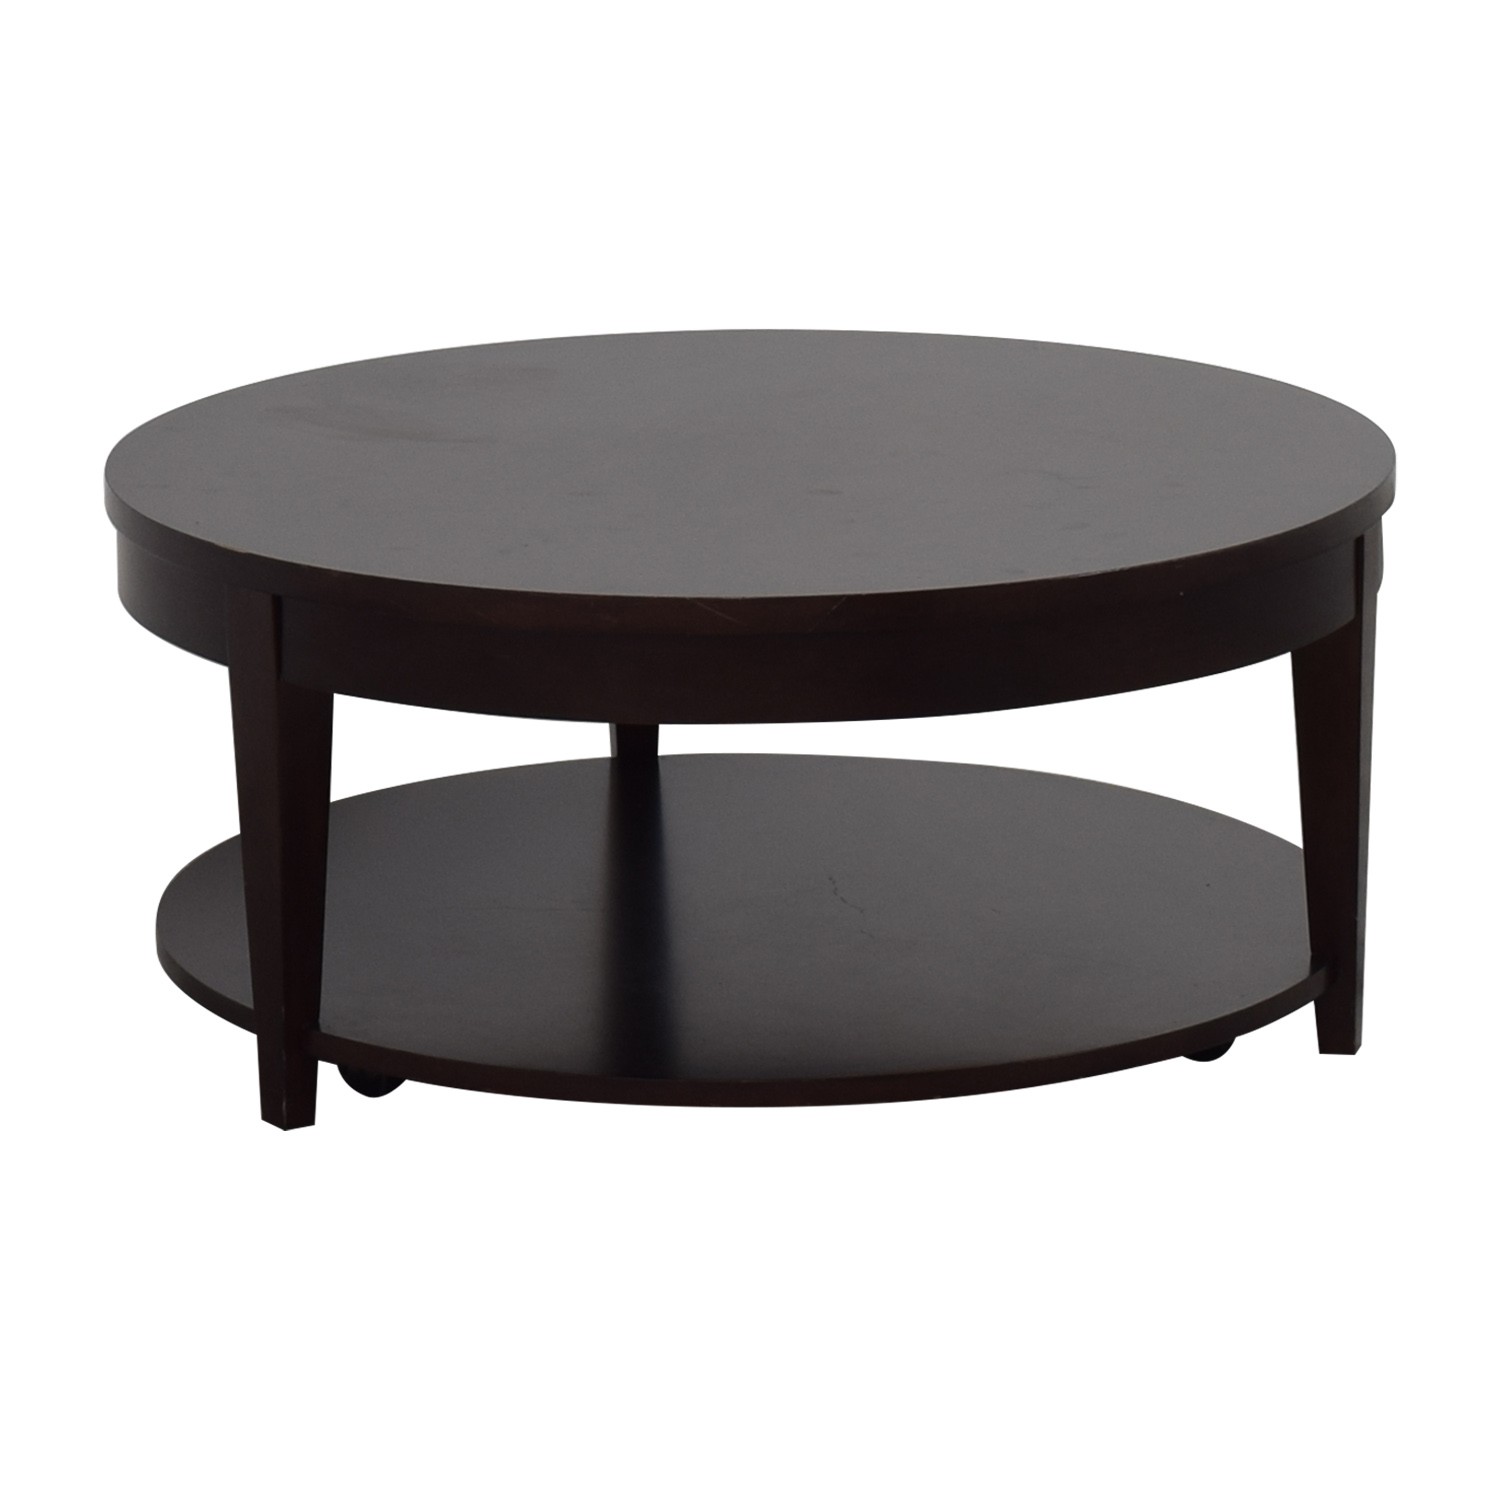 87 off macy 39 s macy 39 s modern rolling round coffee table tables Round coffee table modern